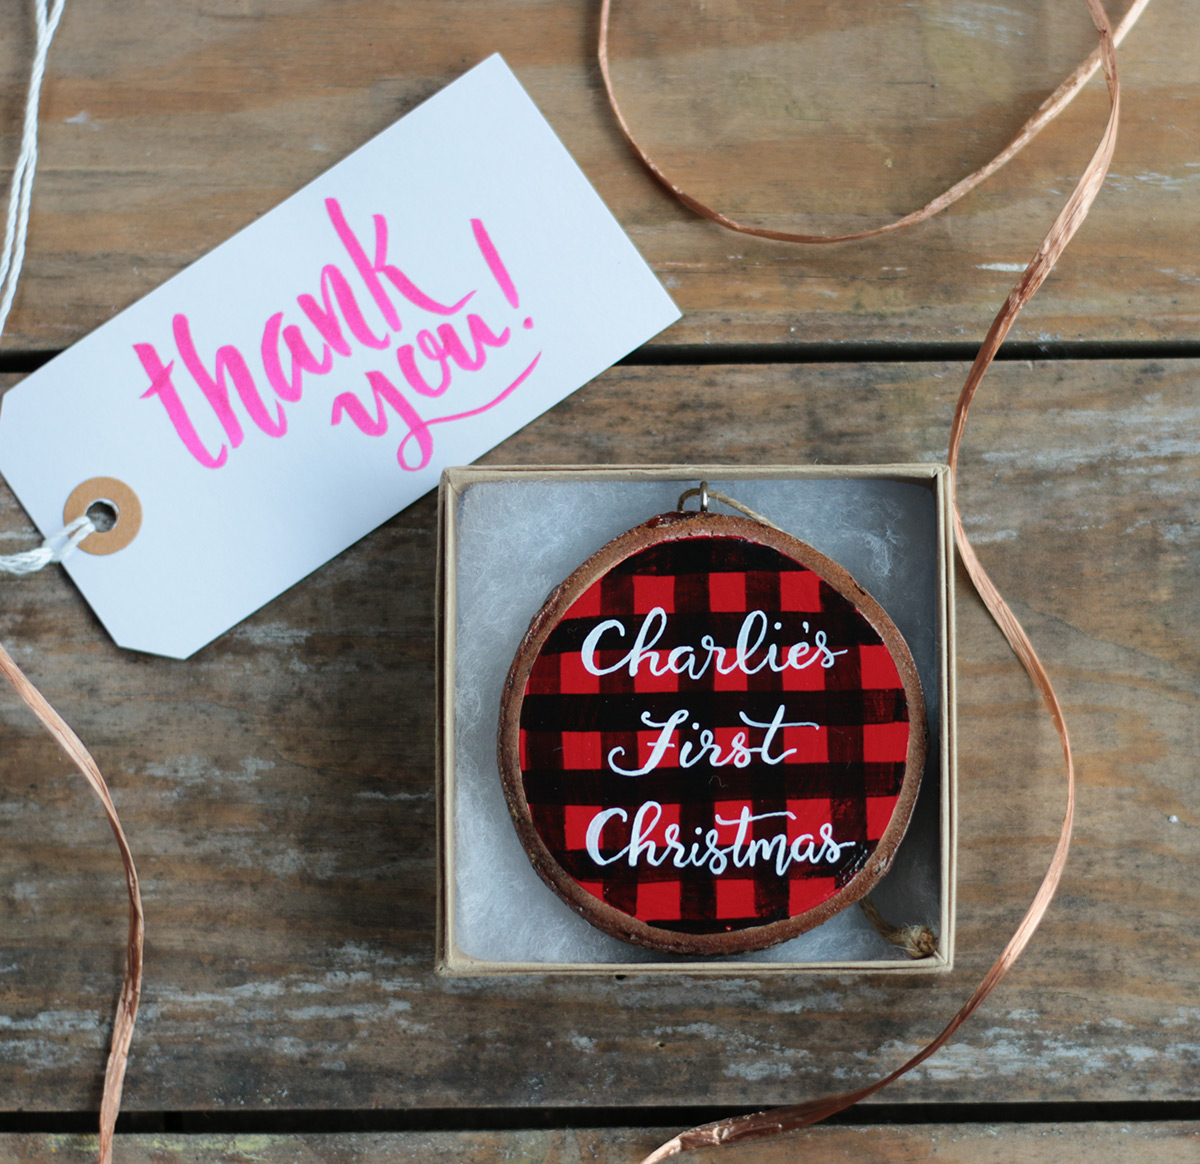 Hand Painted ornaments come in a gift box at The Weed Patch